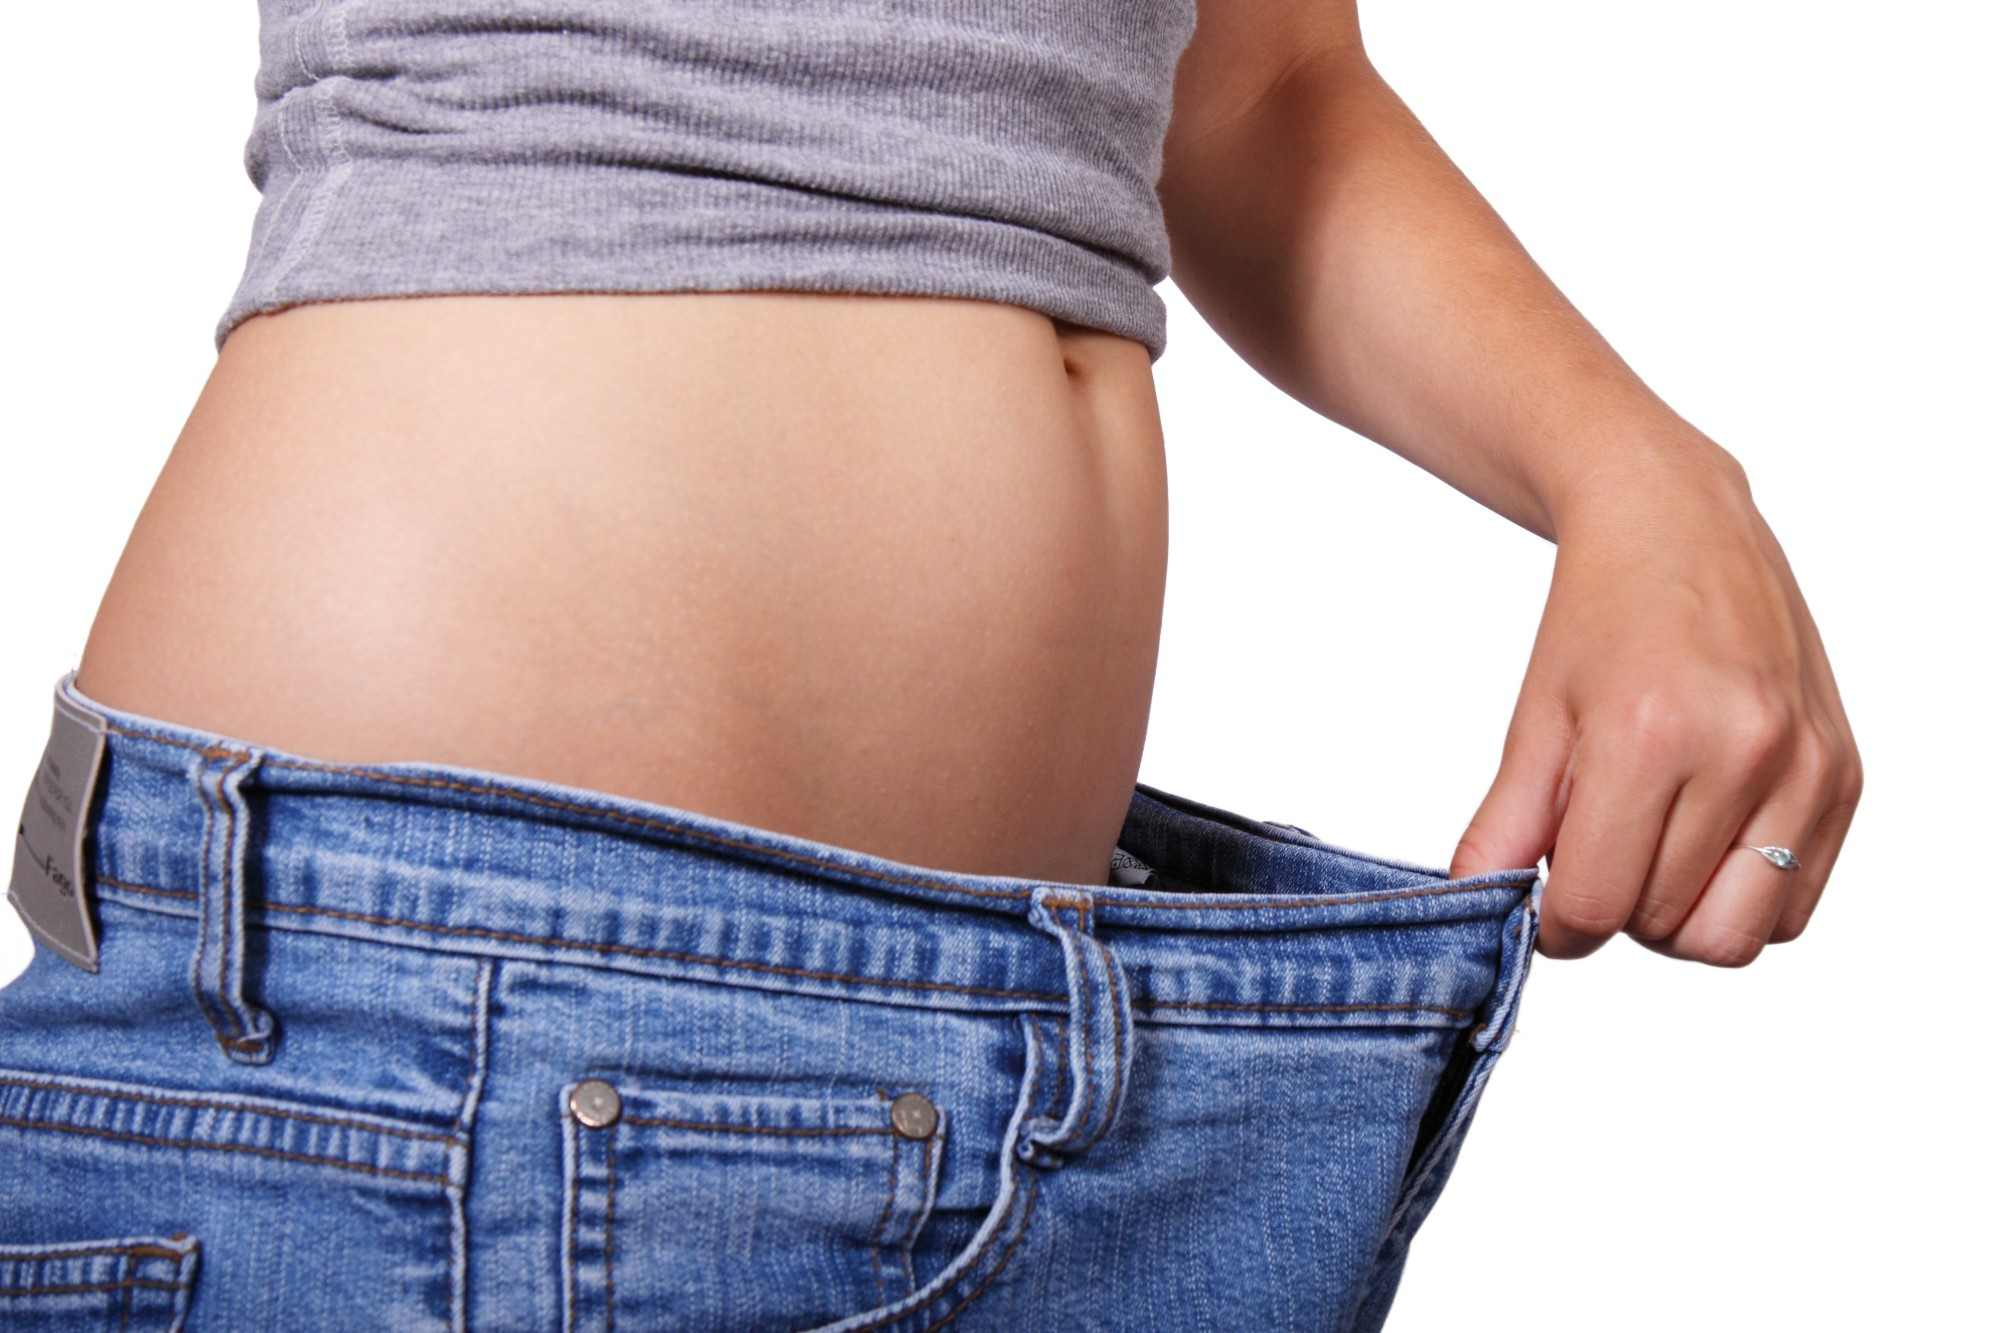 Top 5 Weight Loss Strategies to Shed Those Winter Pounds